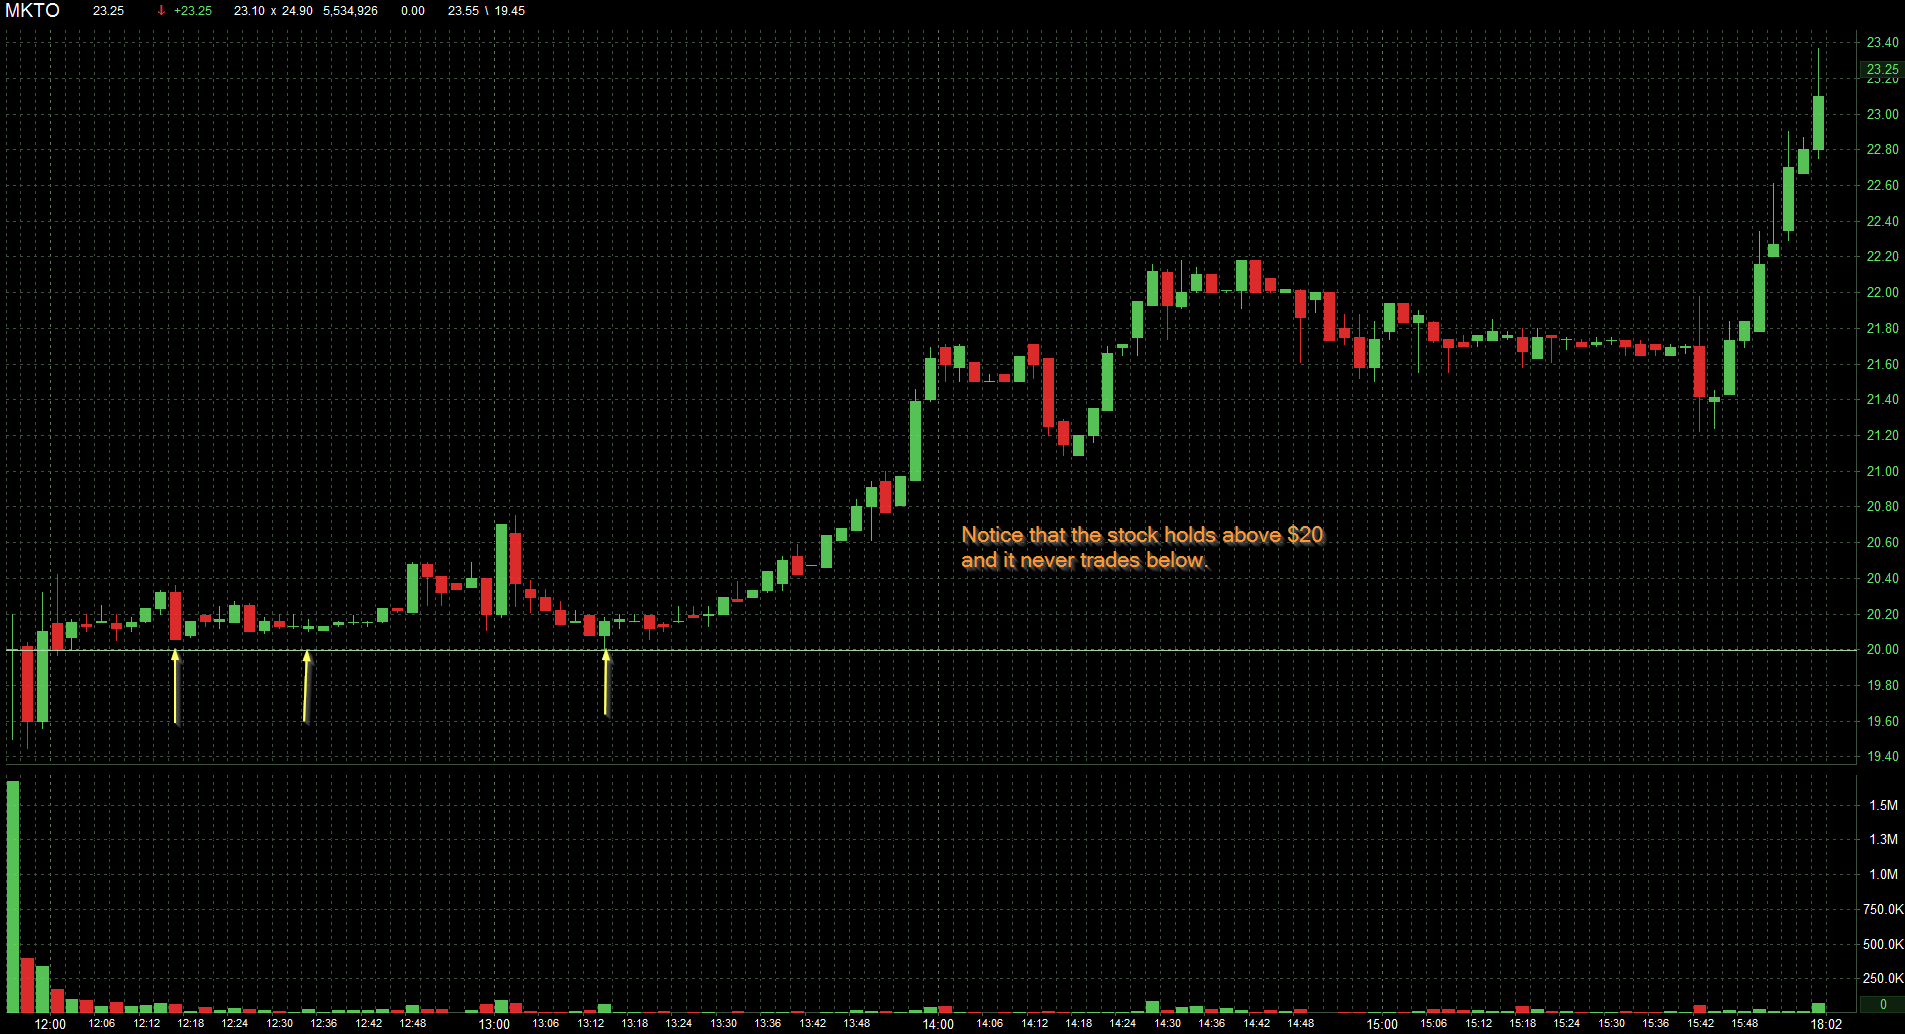 http://charts.stocktwits.net/production/original_13651239.png?1368831462